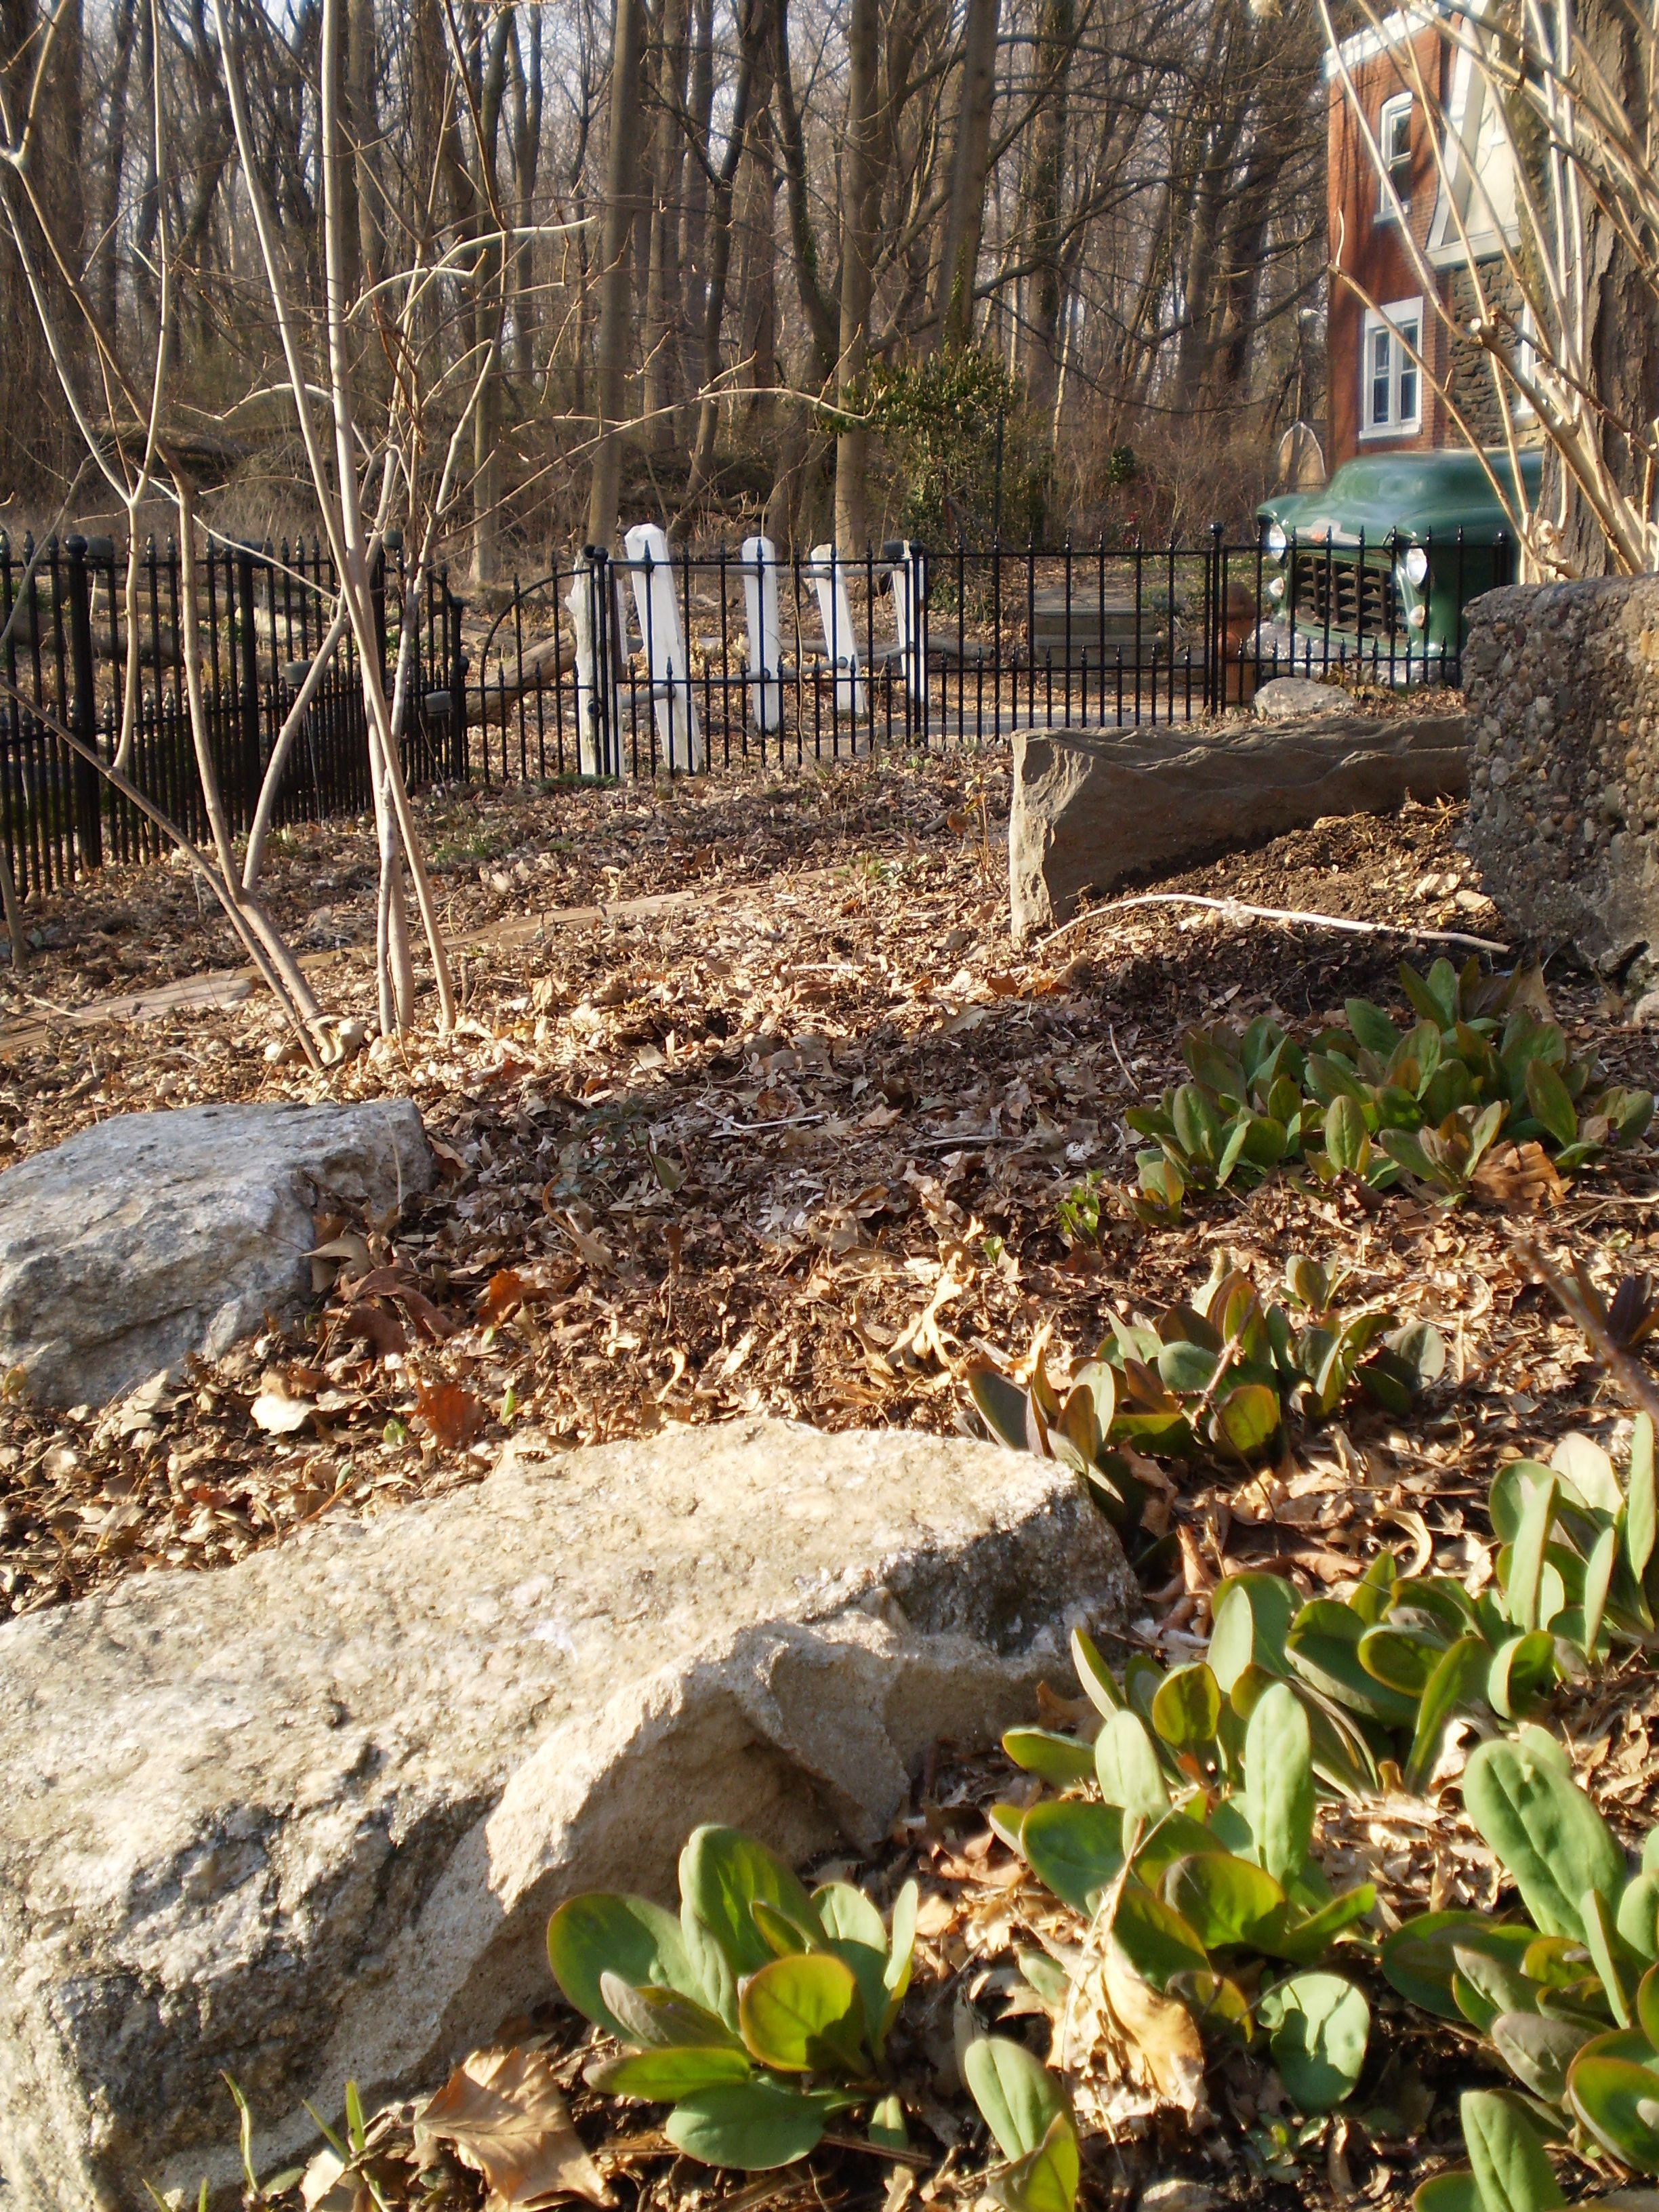 OUR PENNSYLVANIA NATIVE PLANT GARDEN IN EARLY SPRING – The Sanguine Root